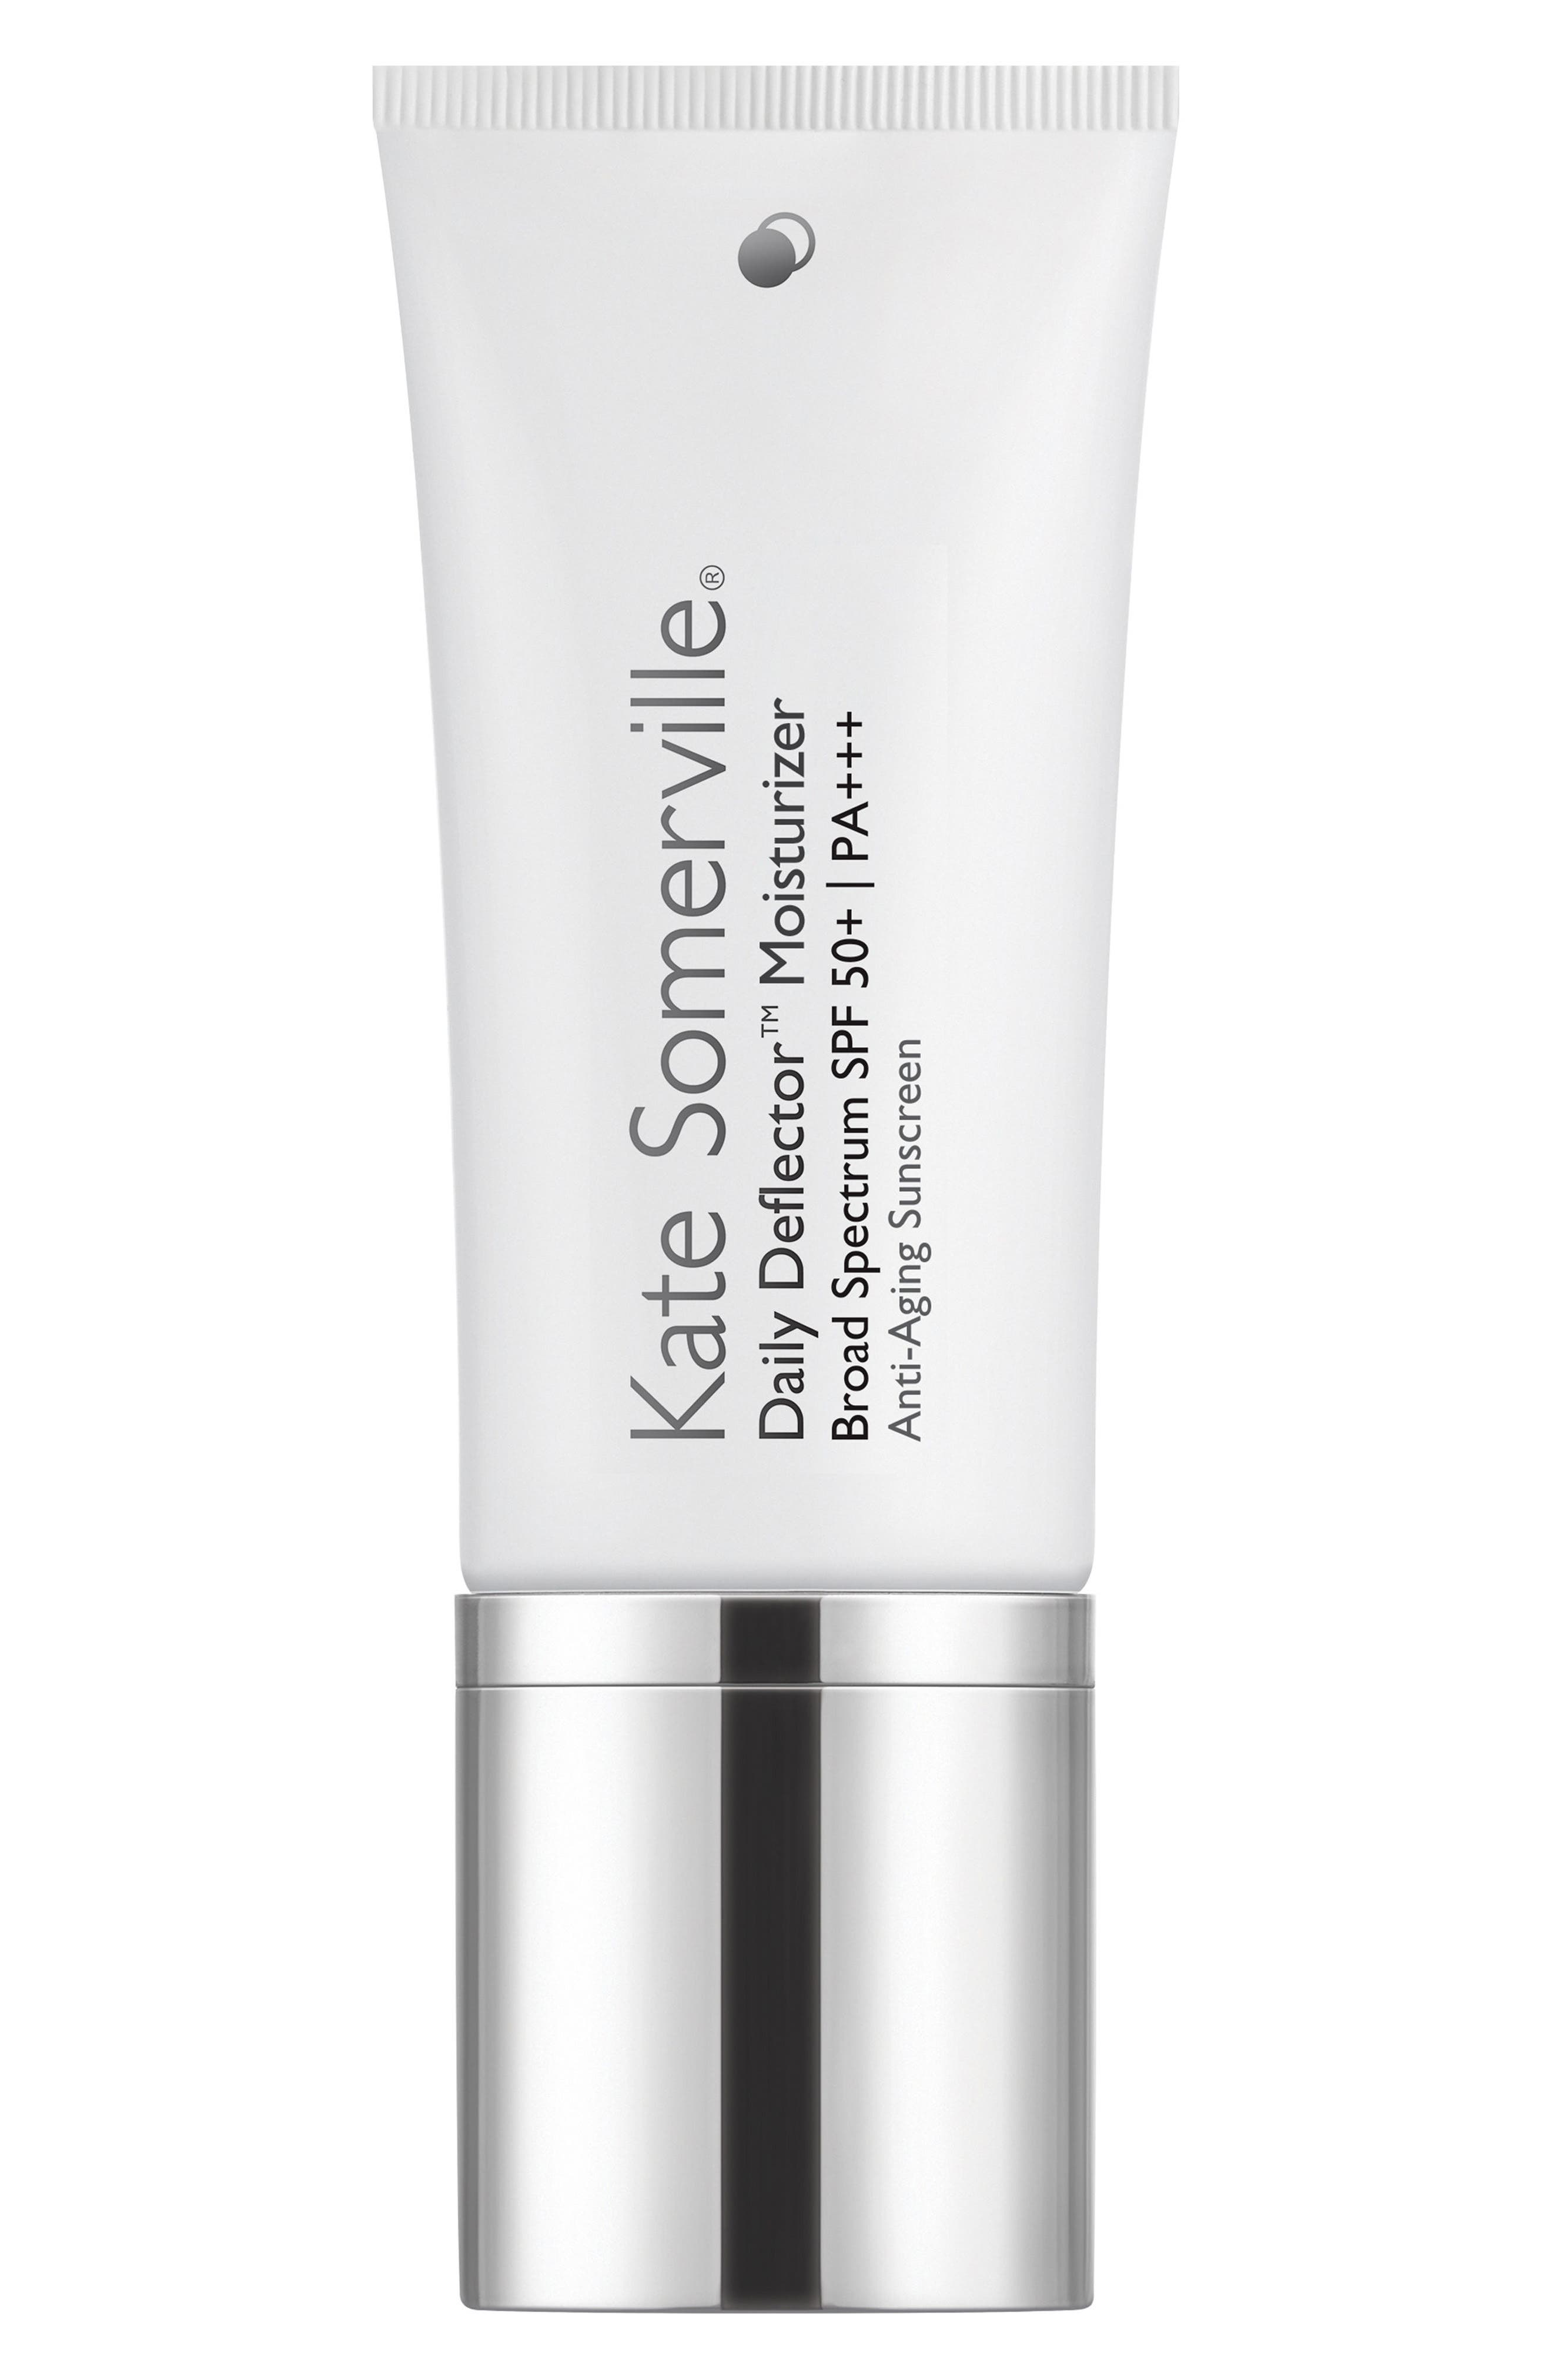 Kate Somerville® 'Daily Deflector™' Moisturizer Broad Spectrum SPF 50+ Anti-Aging Sunscreen